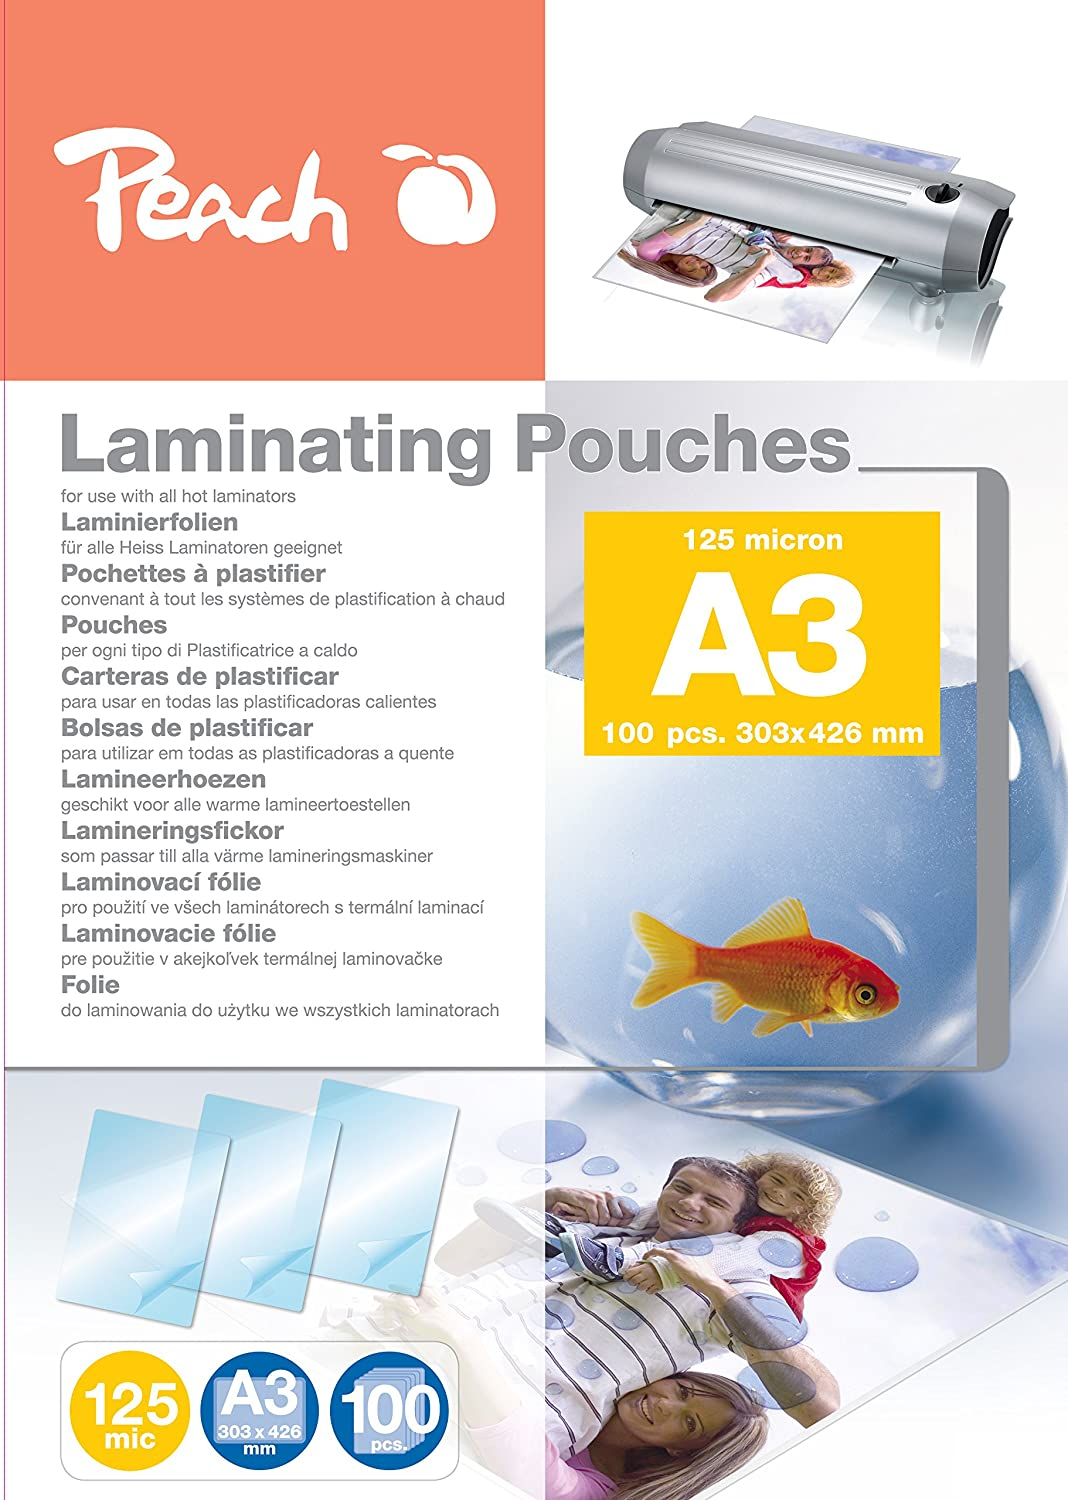 Amazon.com : Peach PP525-01 A3 Laminating Pouches : Office ...